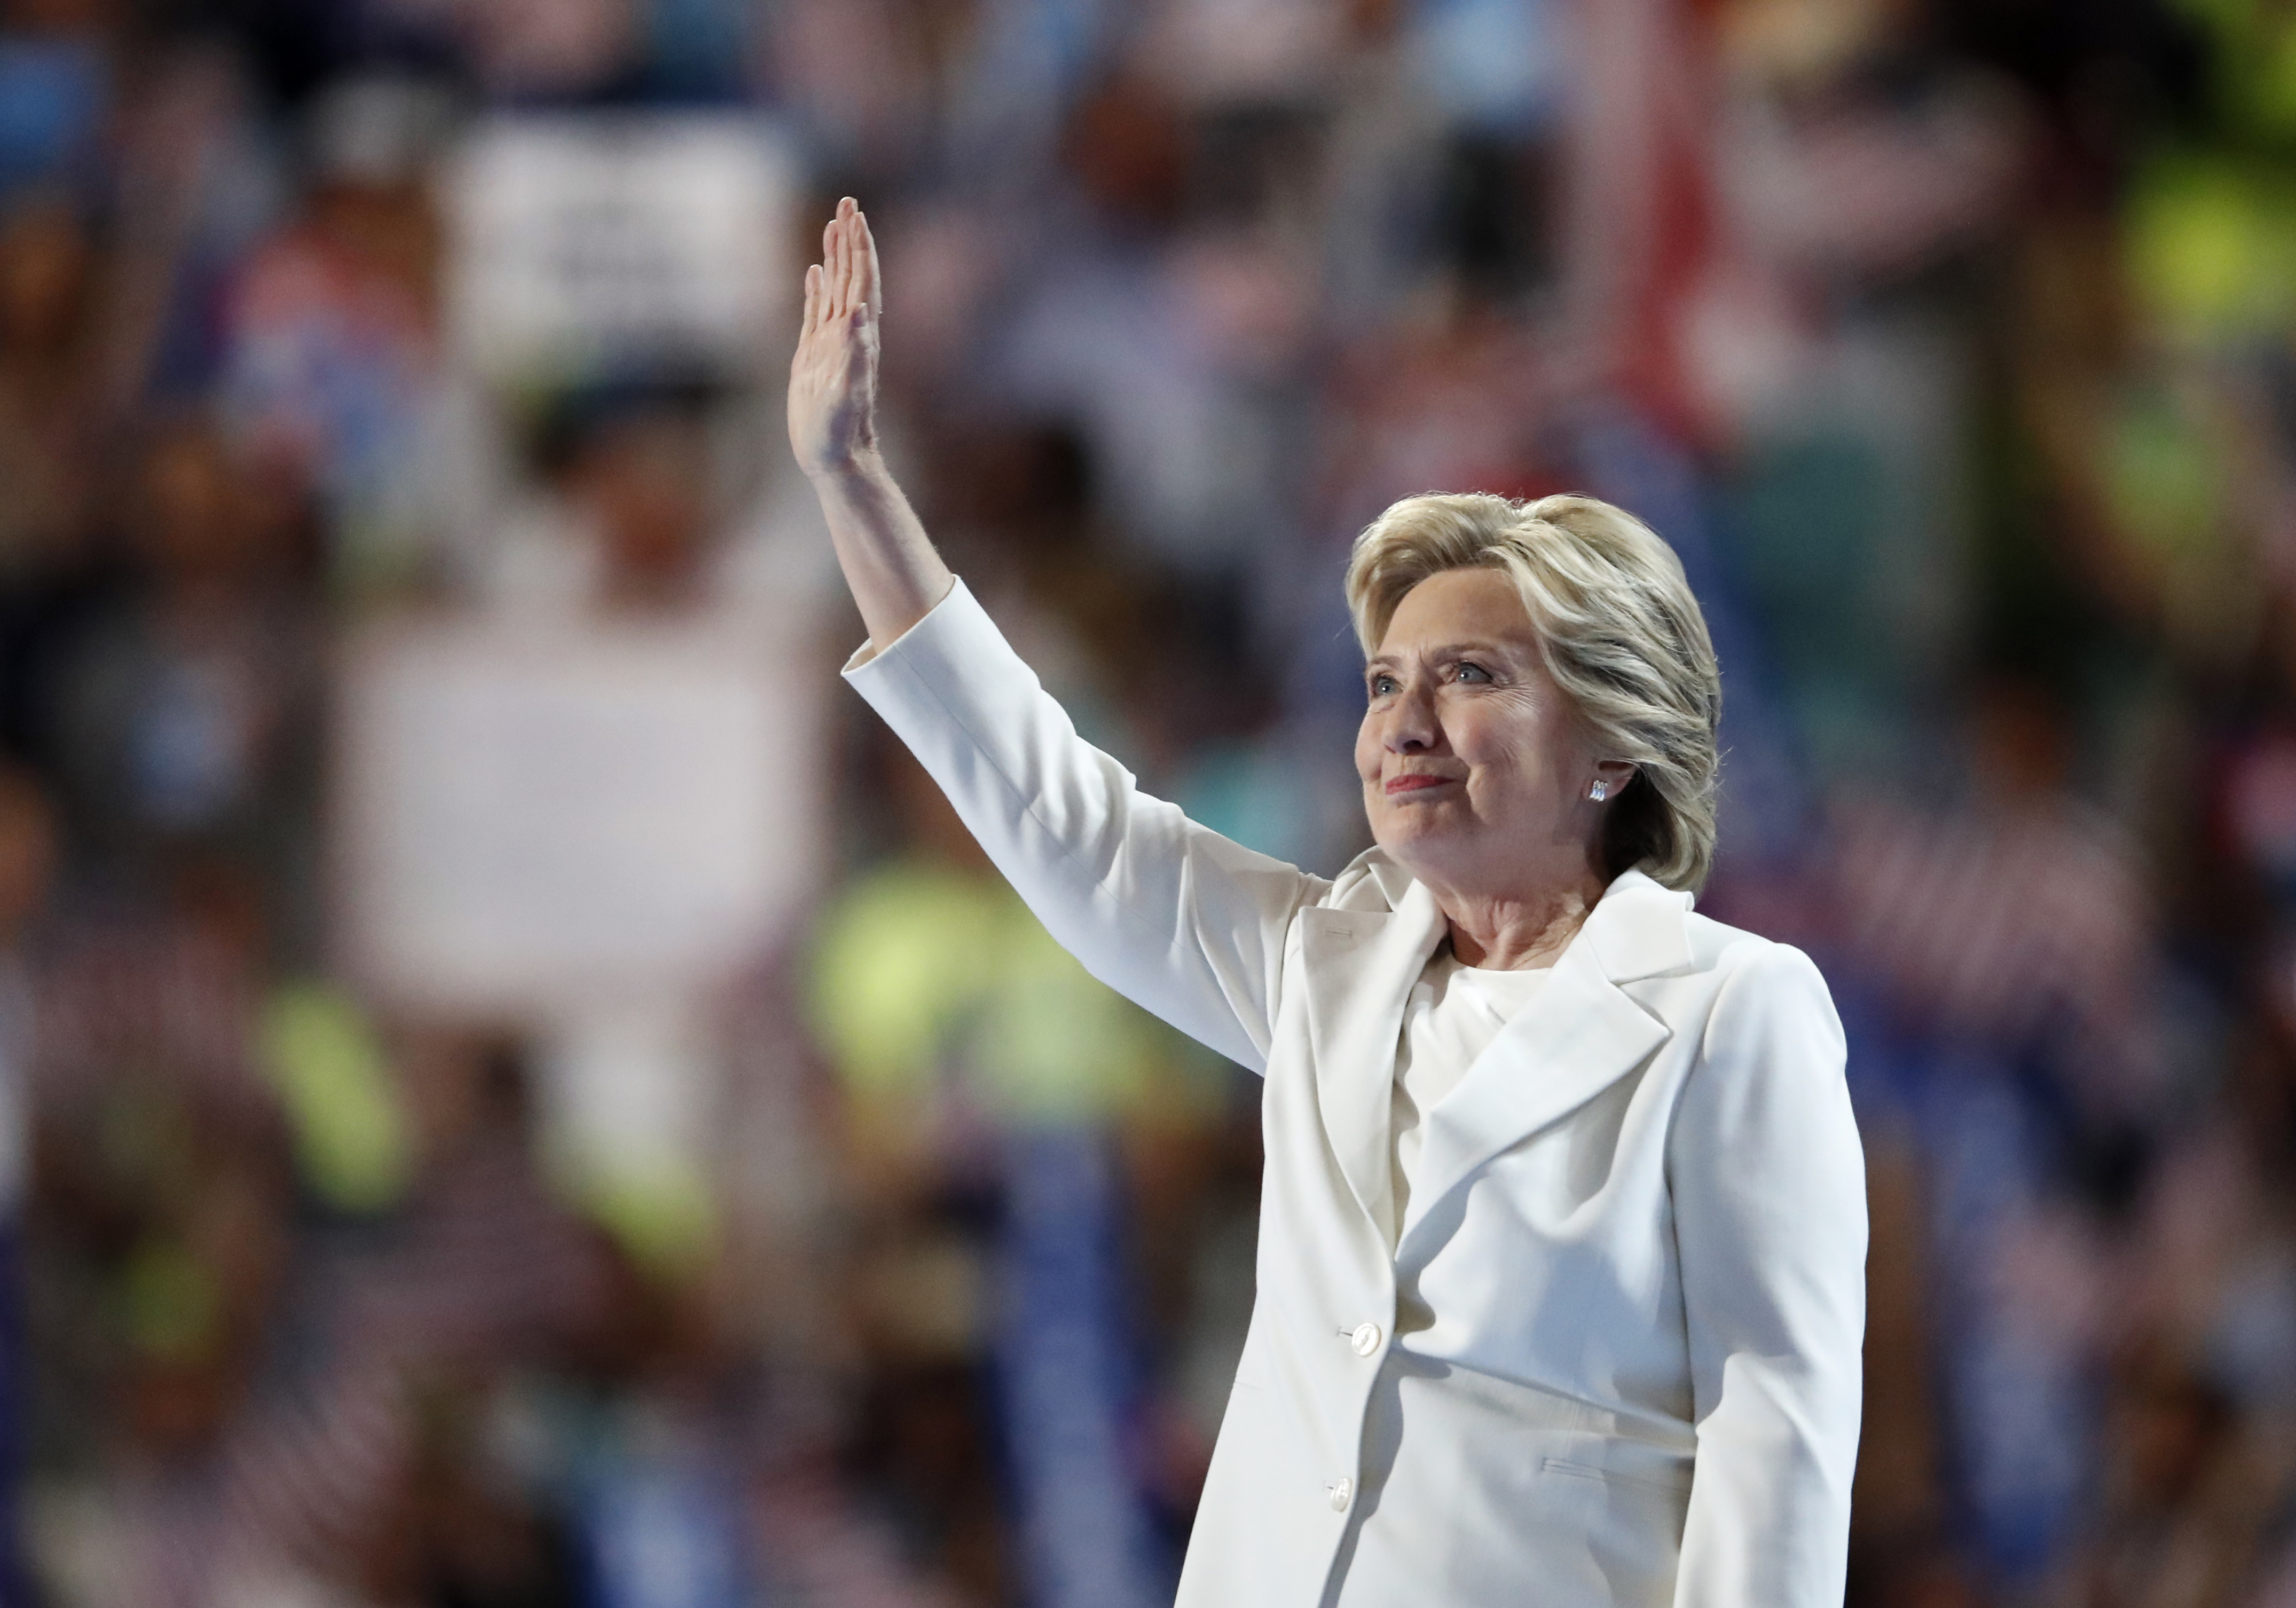 Democratic presidential nominee Hillary Clinton waves after taking the stage during the final day of the Democratic National Convention in Philadelphia , Thursday, July 28, 2016 |AP Photo by Paul Sancya, St. George News